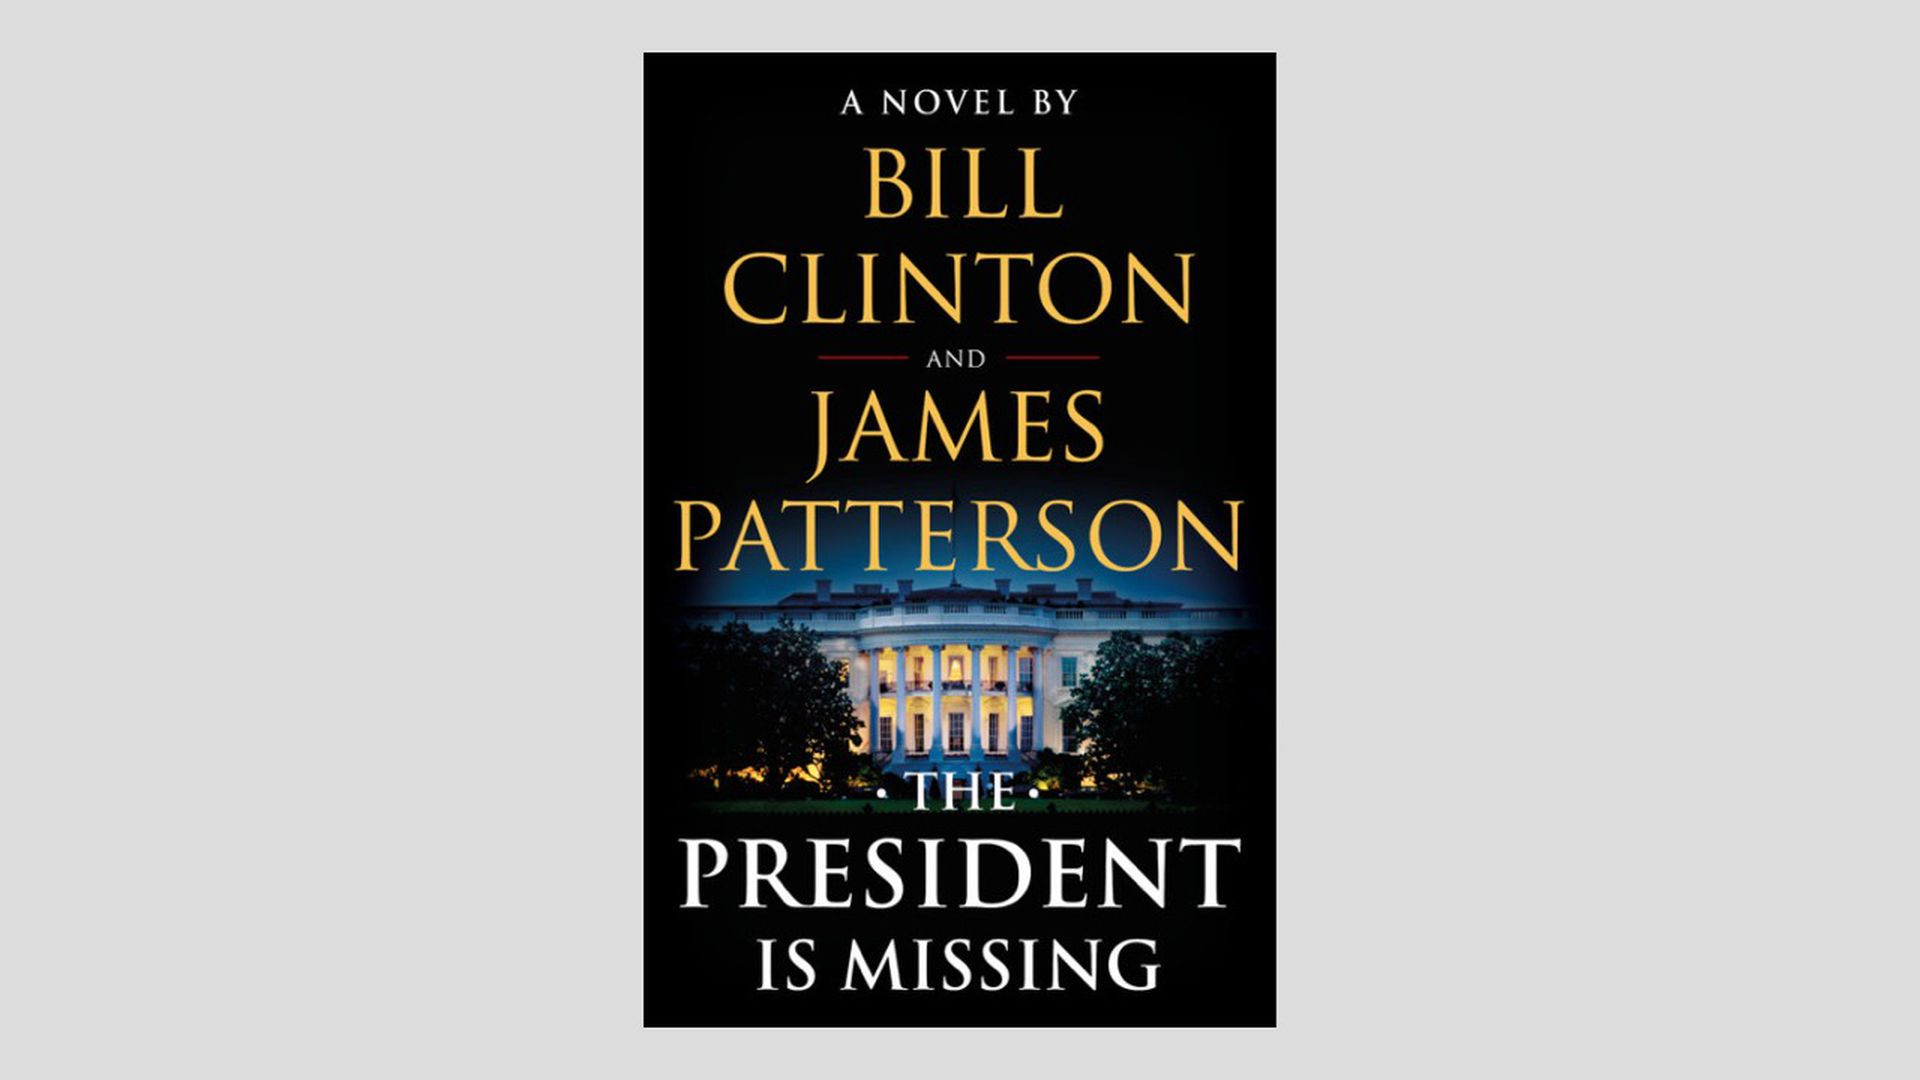 Bill Clinton and James Patterson's book, The President is Missing